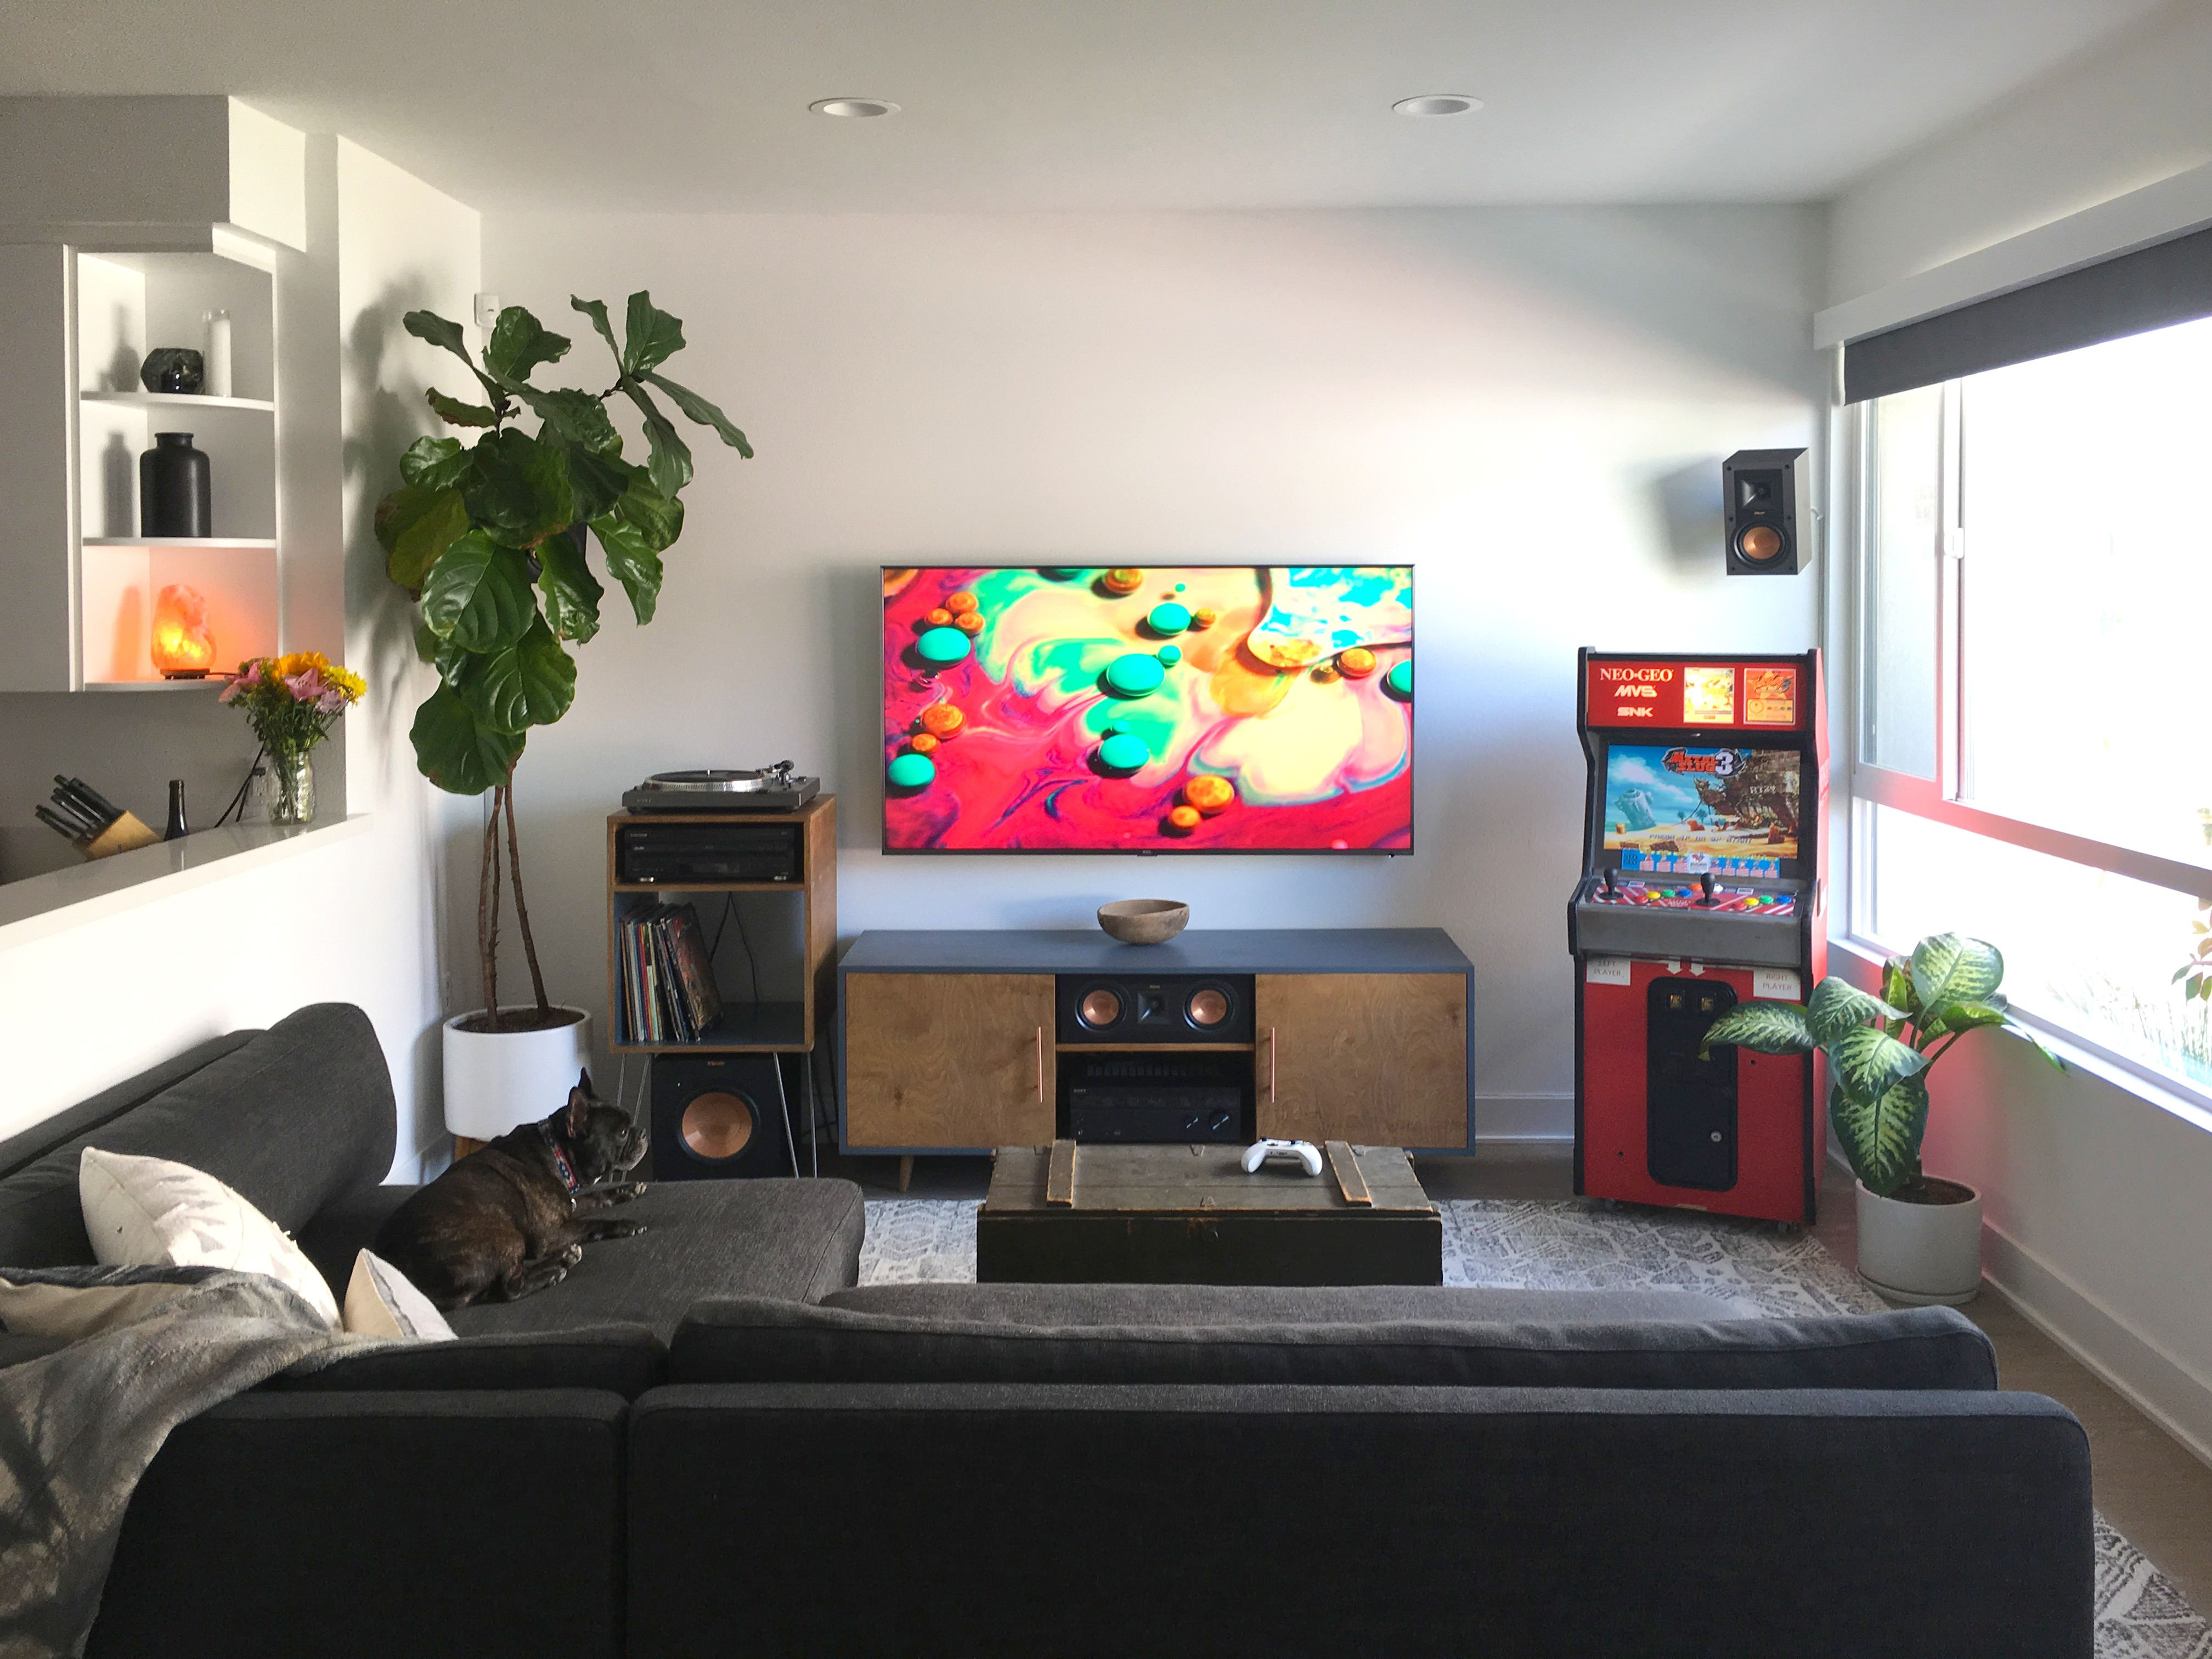 Oc Bought My First Condo In La Getting My Living Room Setup